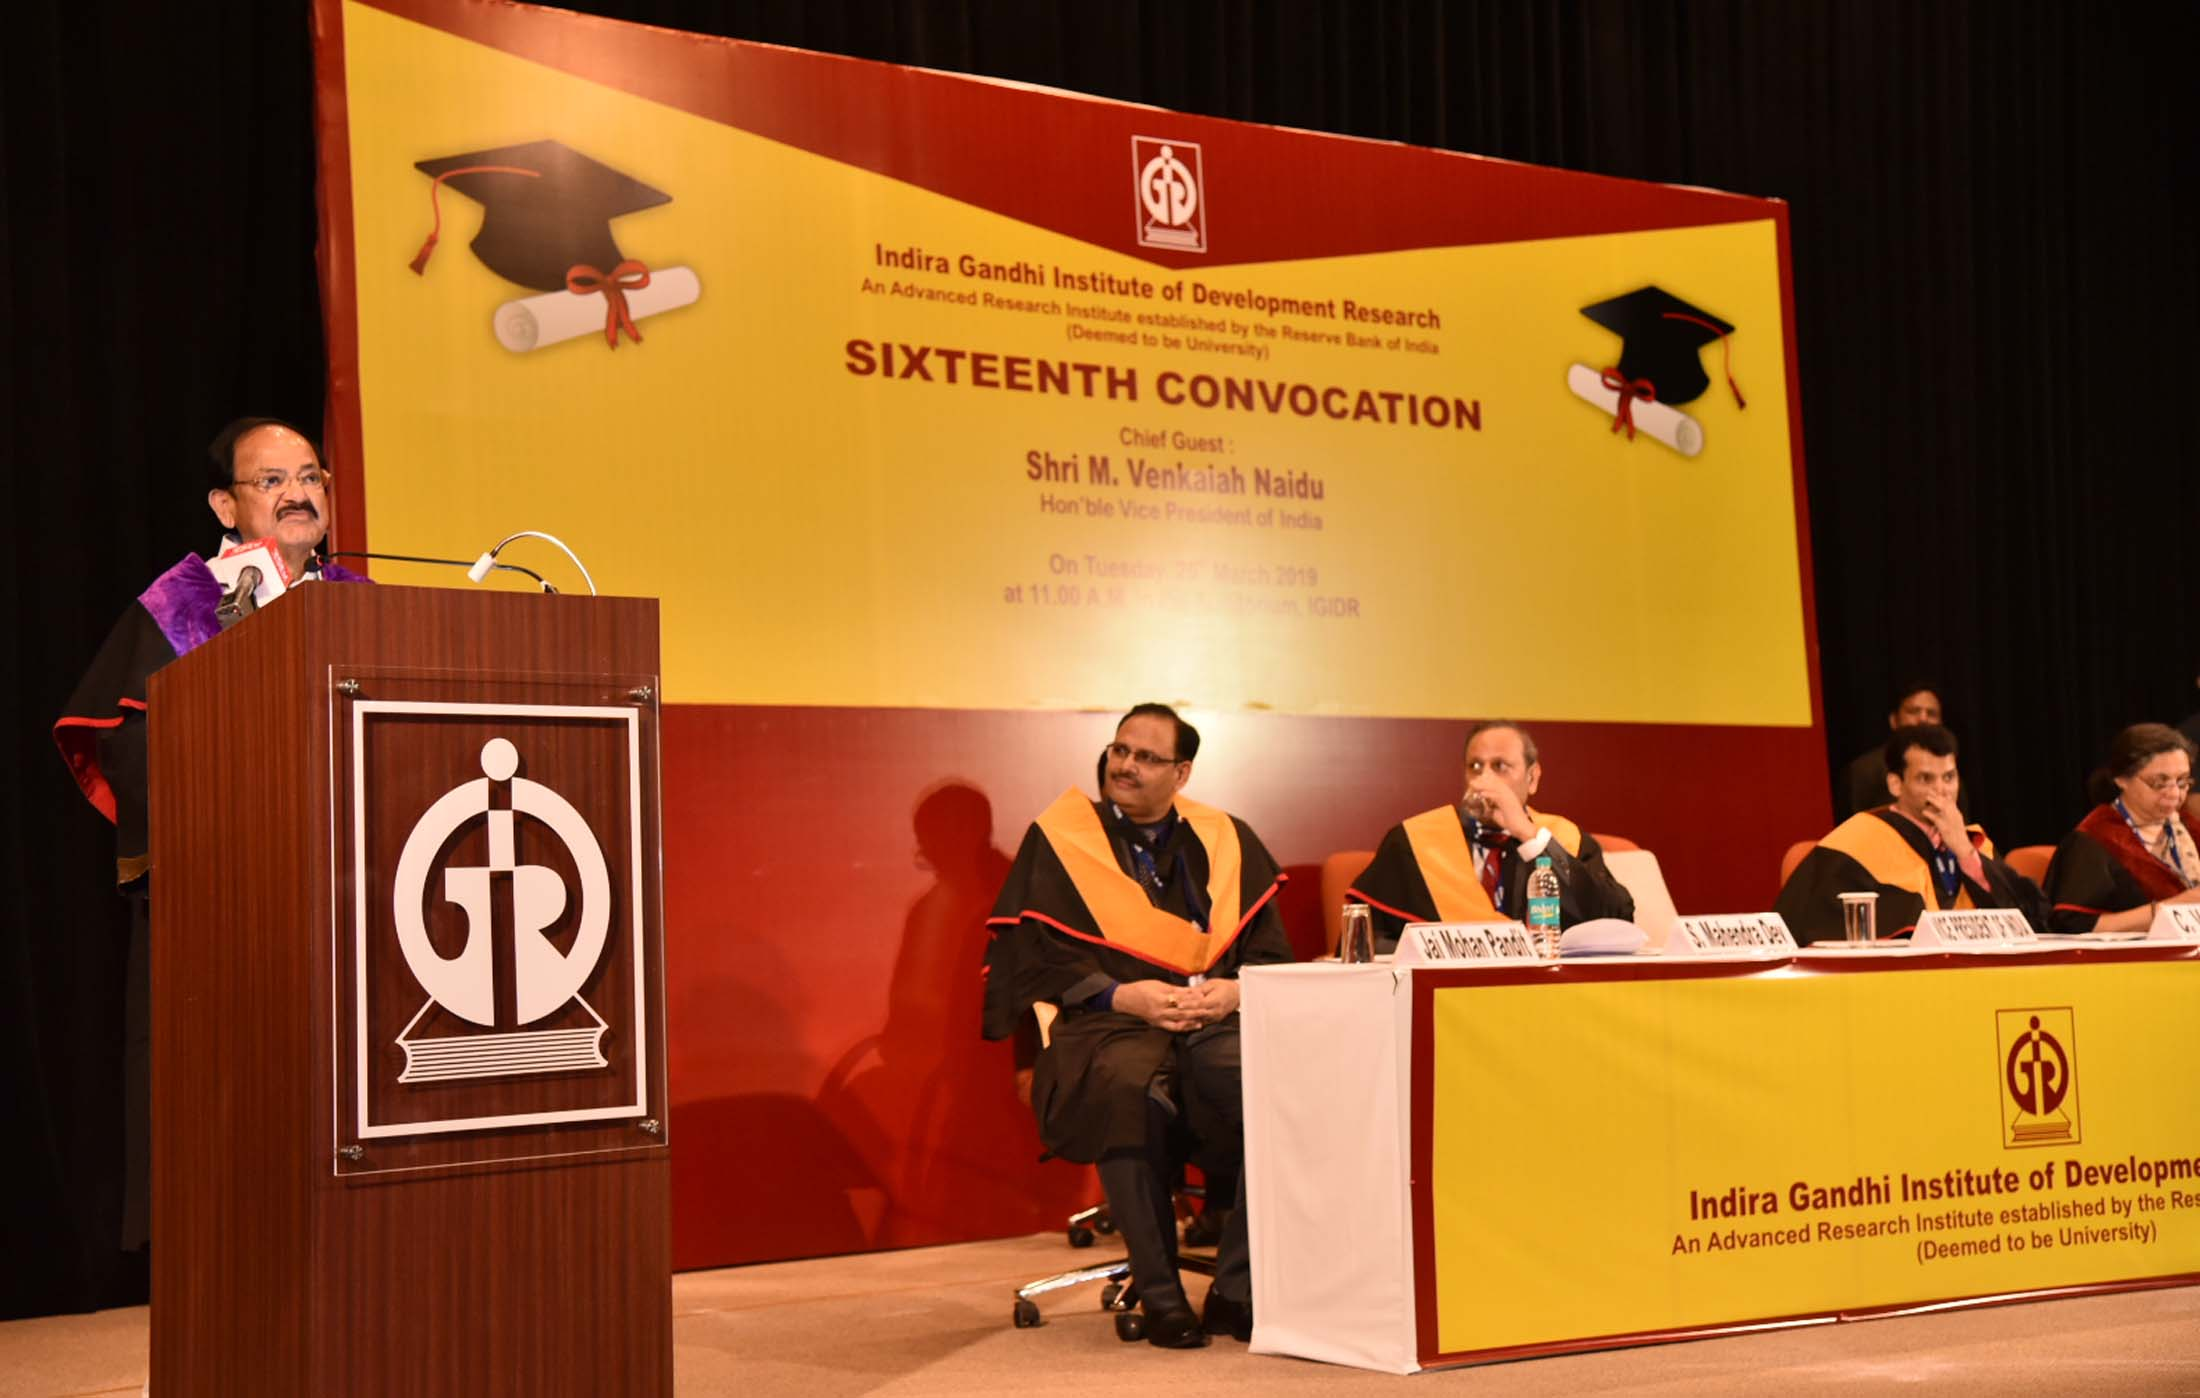 The Vice President, Shri M. Venkaiah Naidu addressing the gathering at the 16th Convocation of the Indira Gandhi Institute of Development Research, in Mumbai on March 26, 2019.